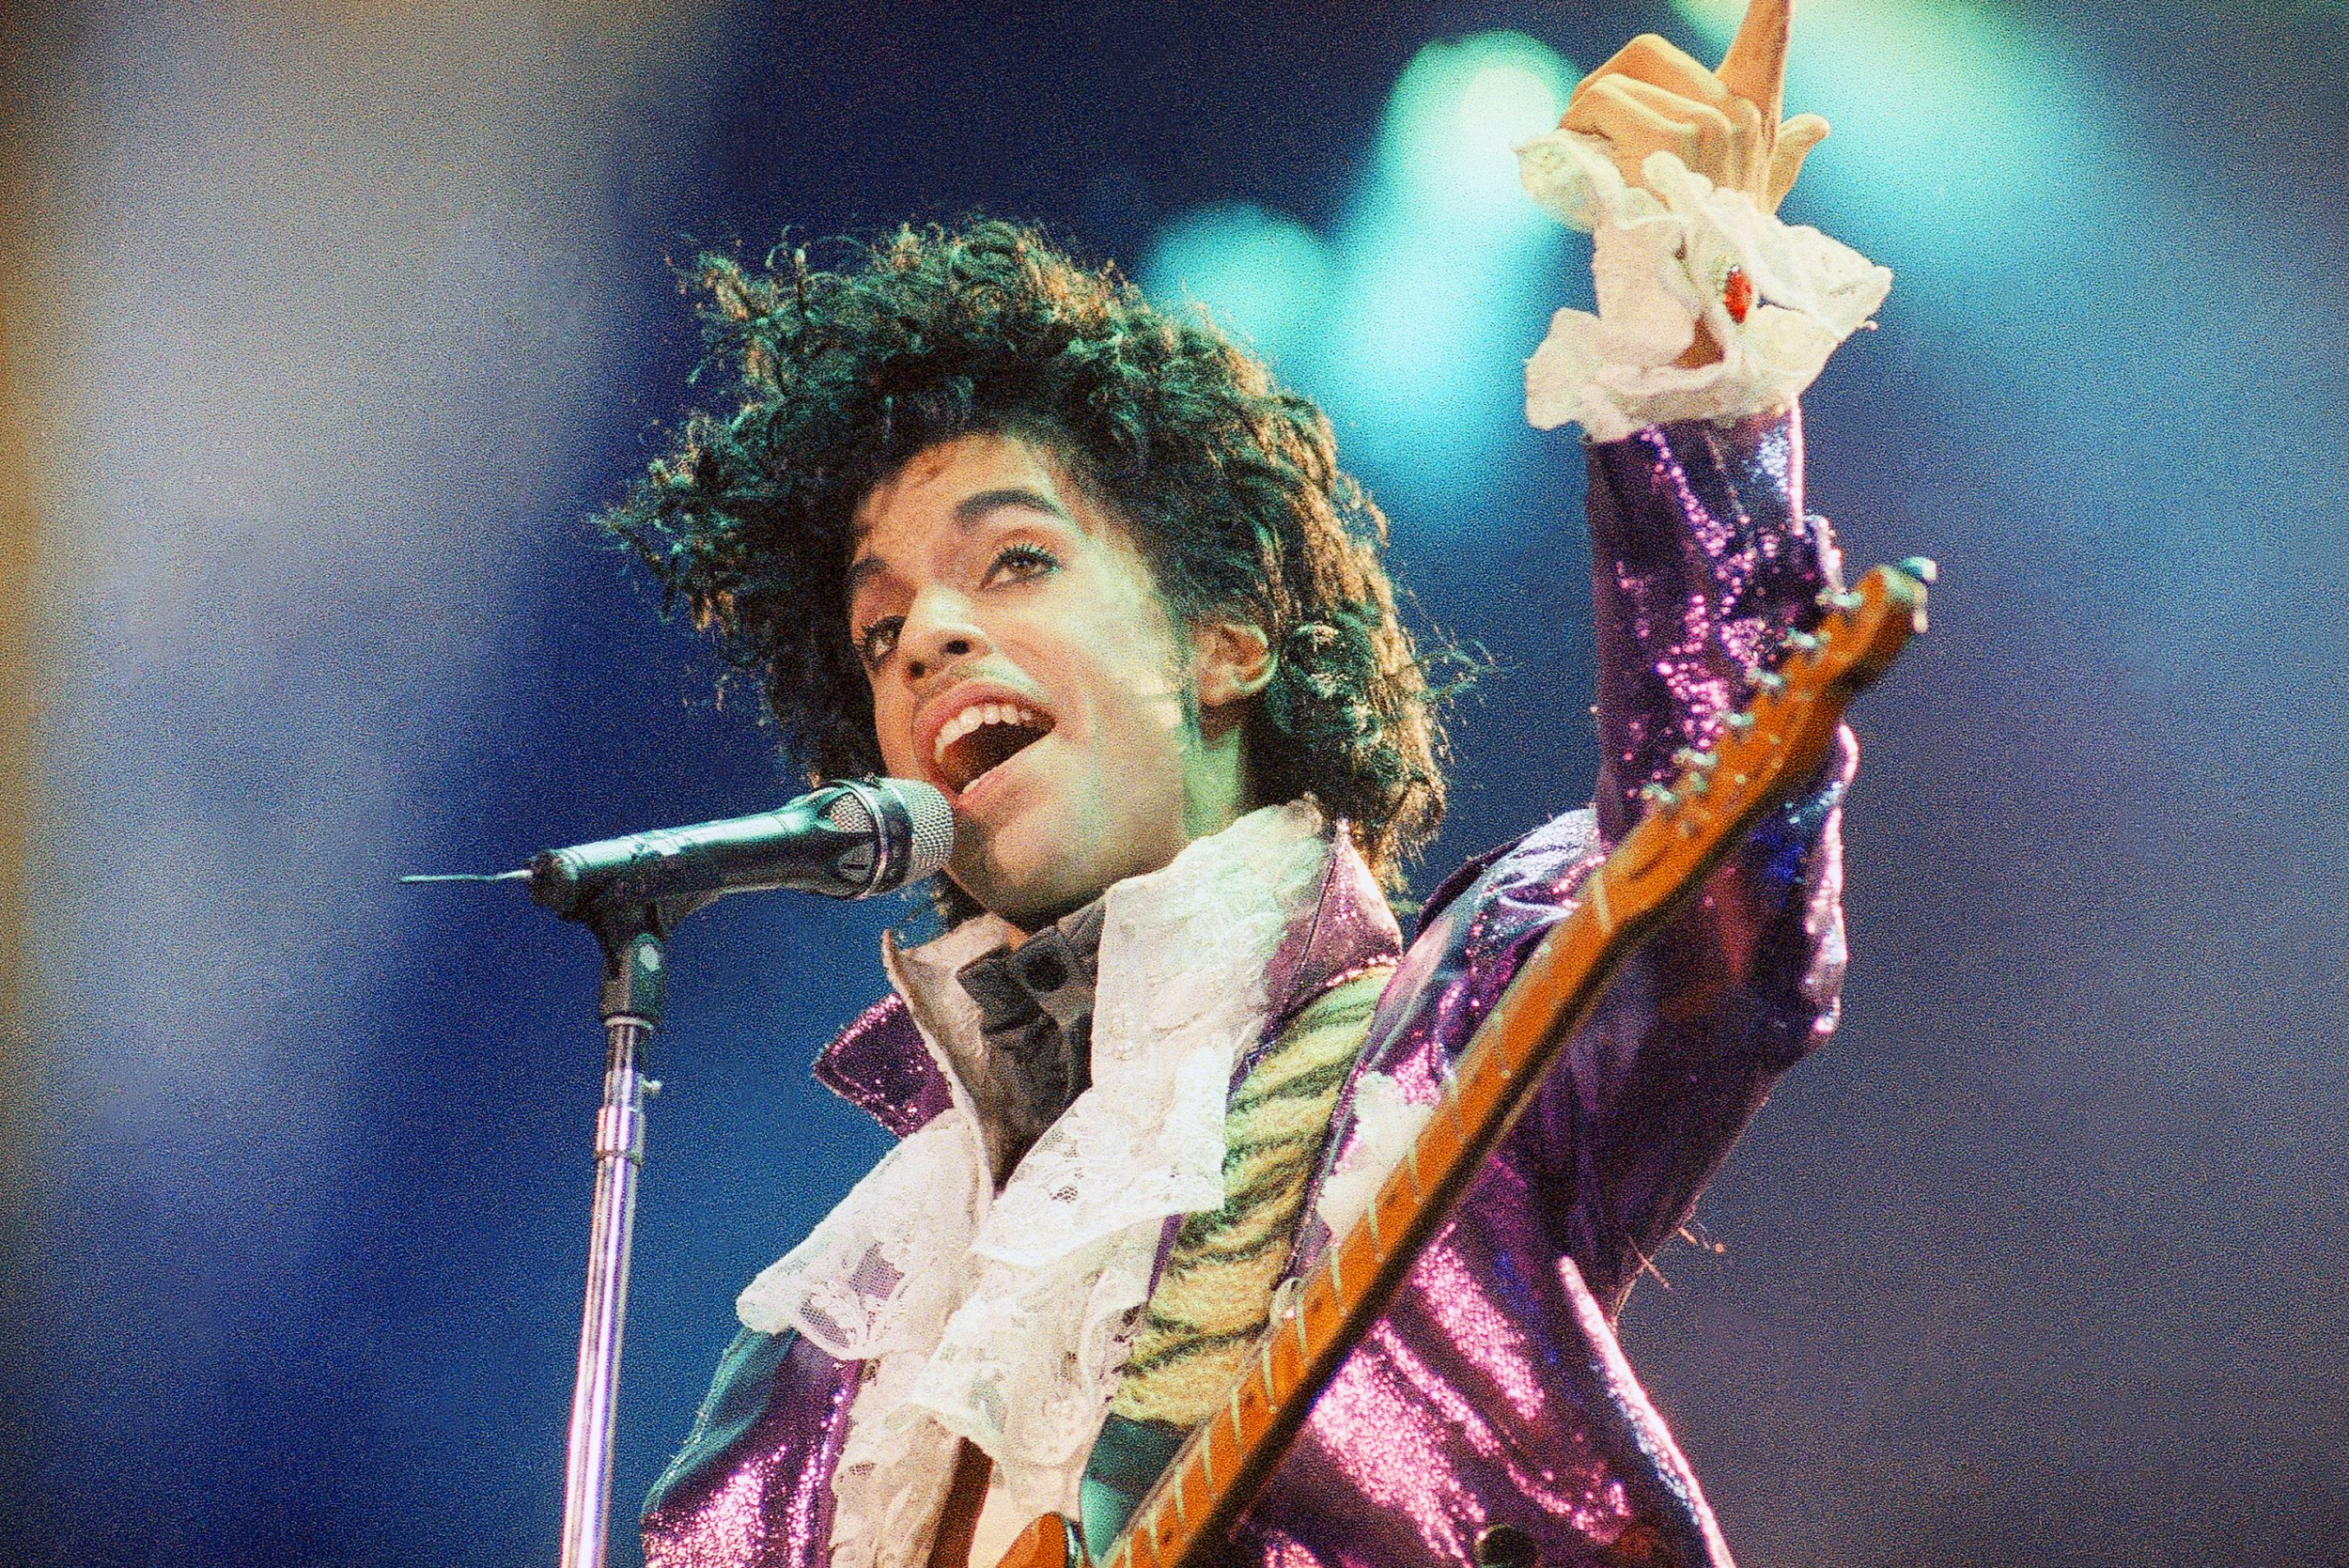 Every album in the top five of the midweek top 40 is by Prince